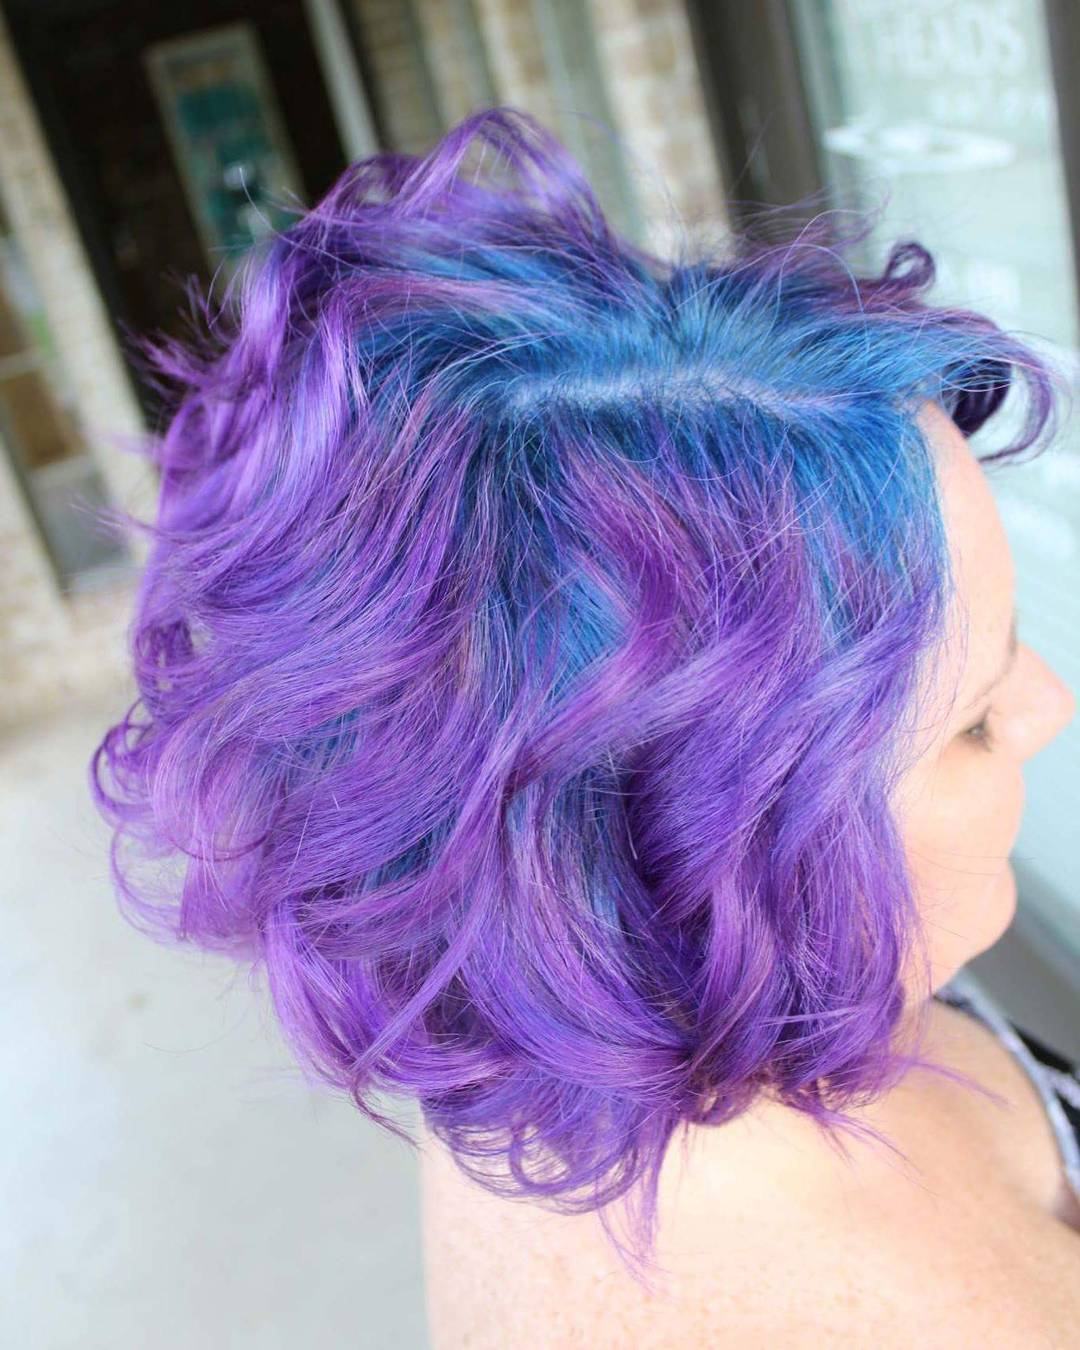 Lila Blaue Haare 35 Stunning Blue And Purple Hair Ideas Fantasy Colors